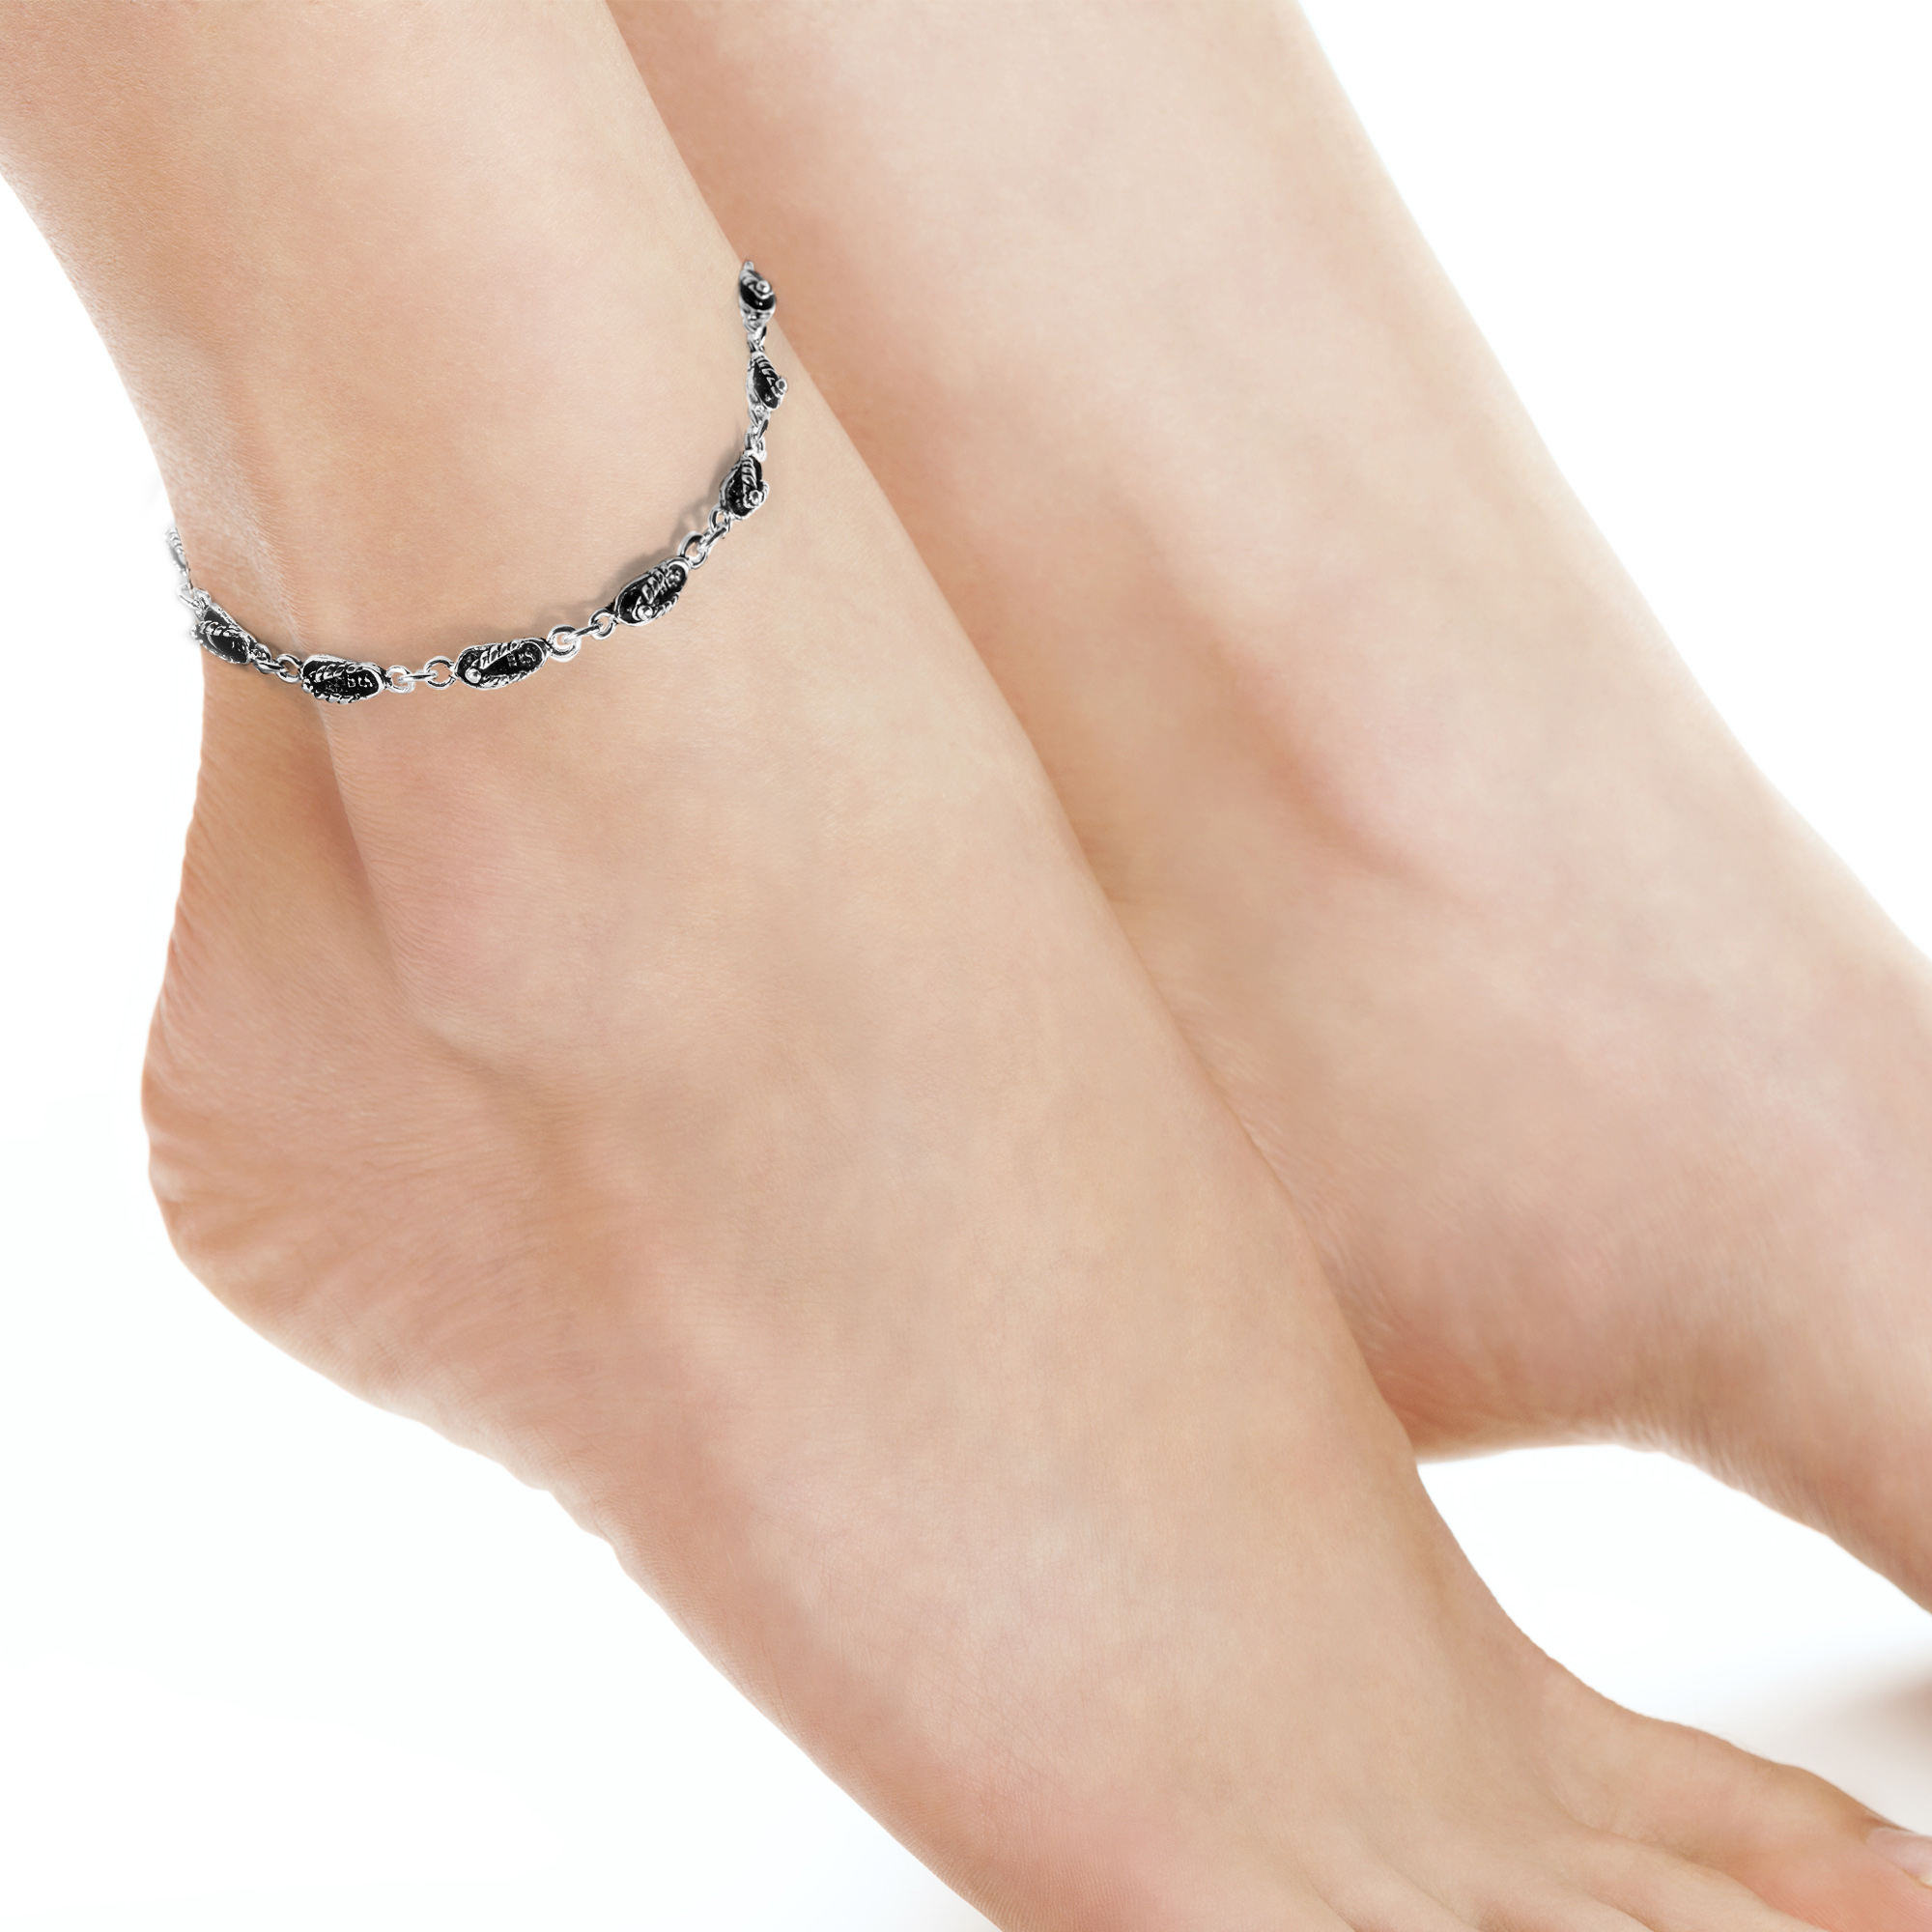 jewellery inches anklet white with s inch chain anklets plated riya p silver stone diamond payal rabbi